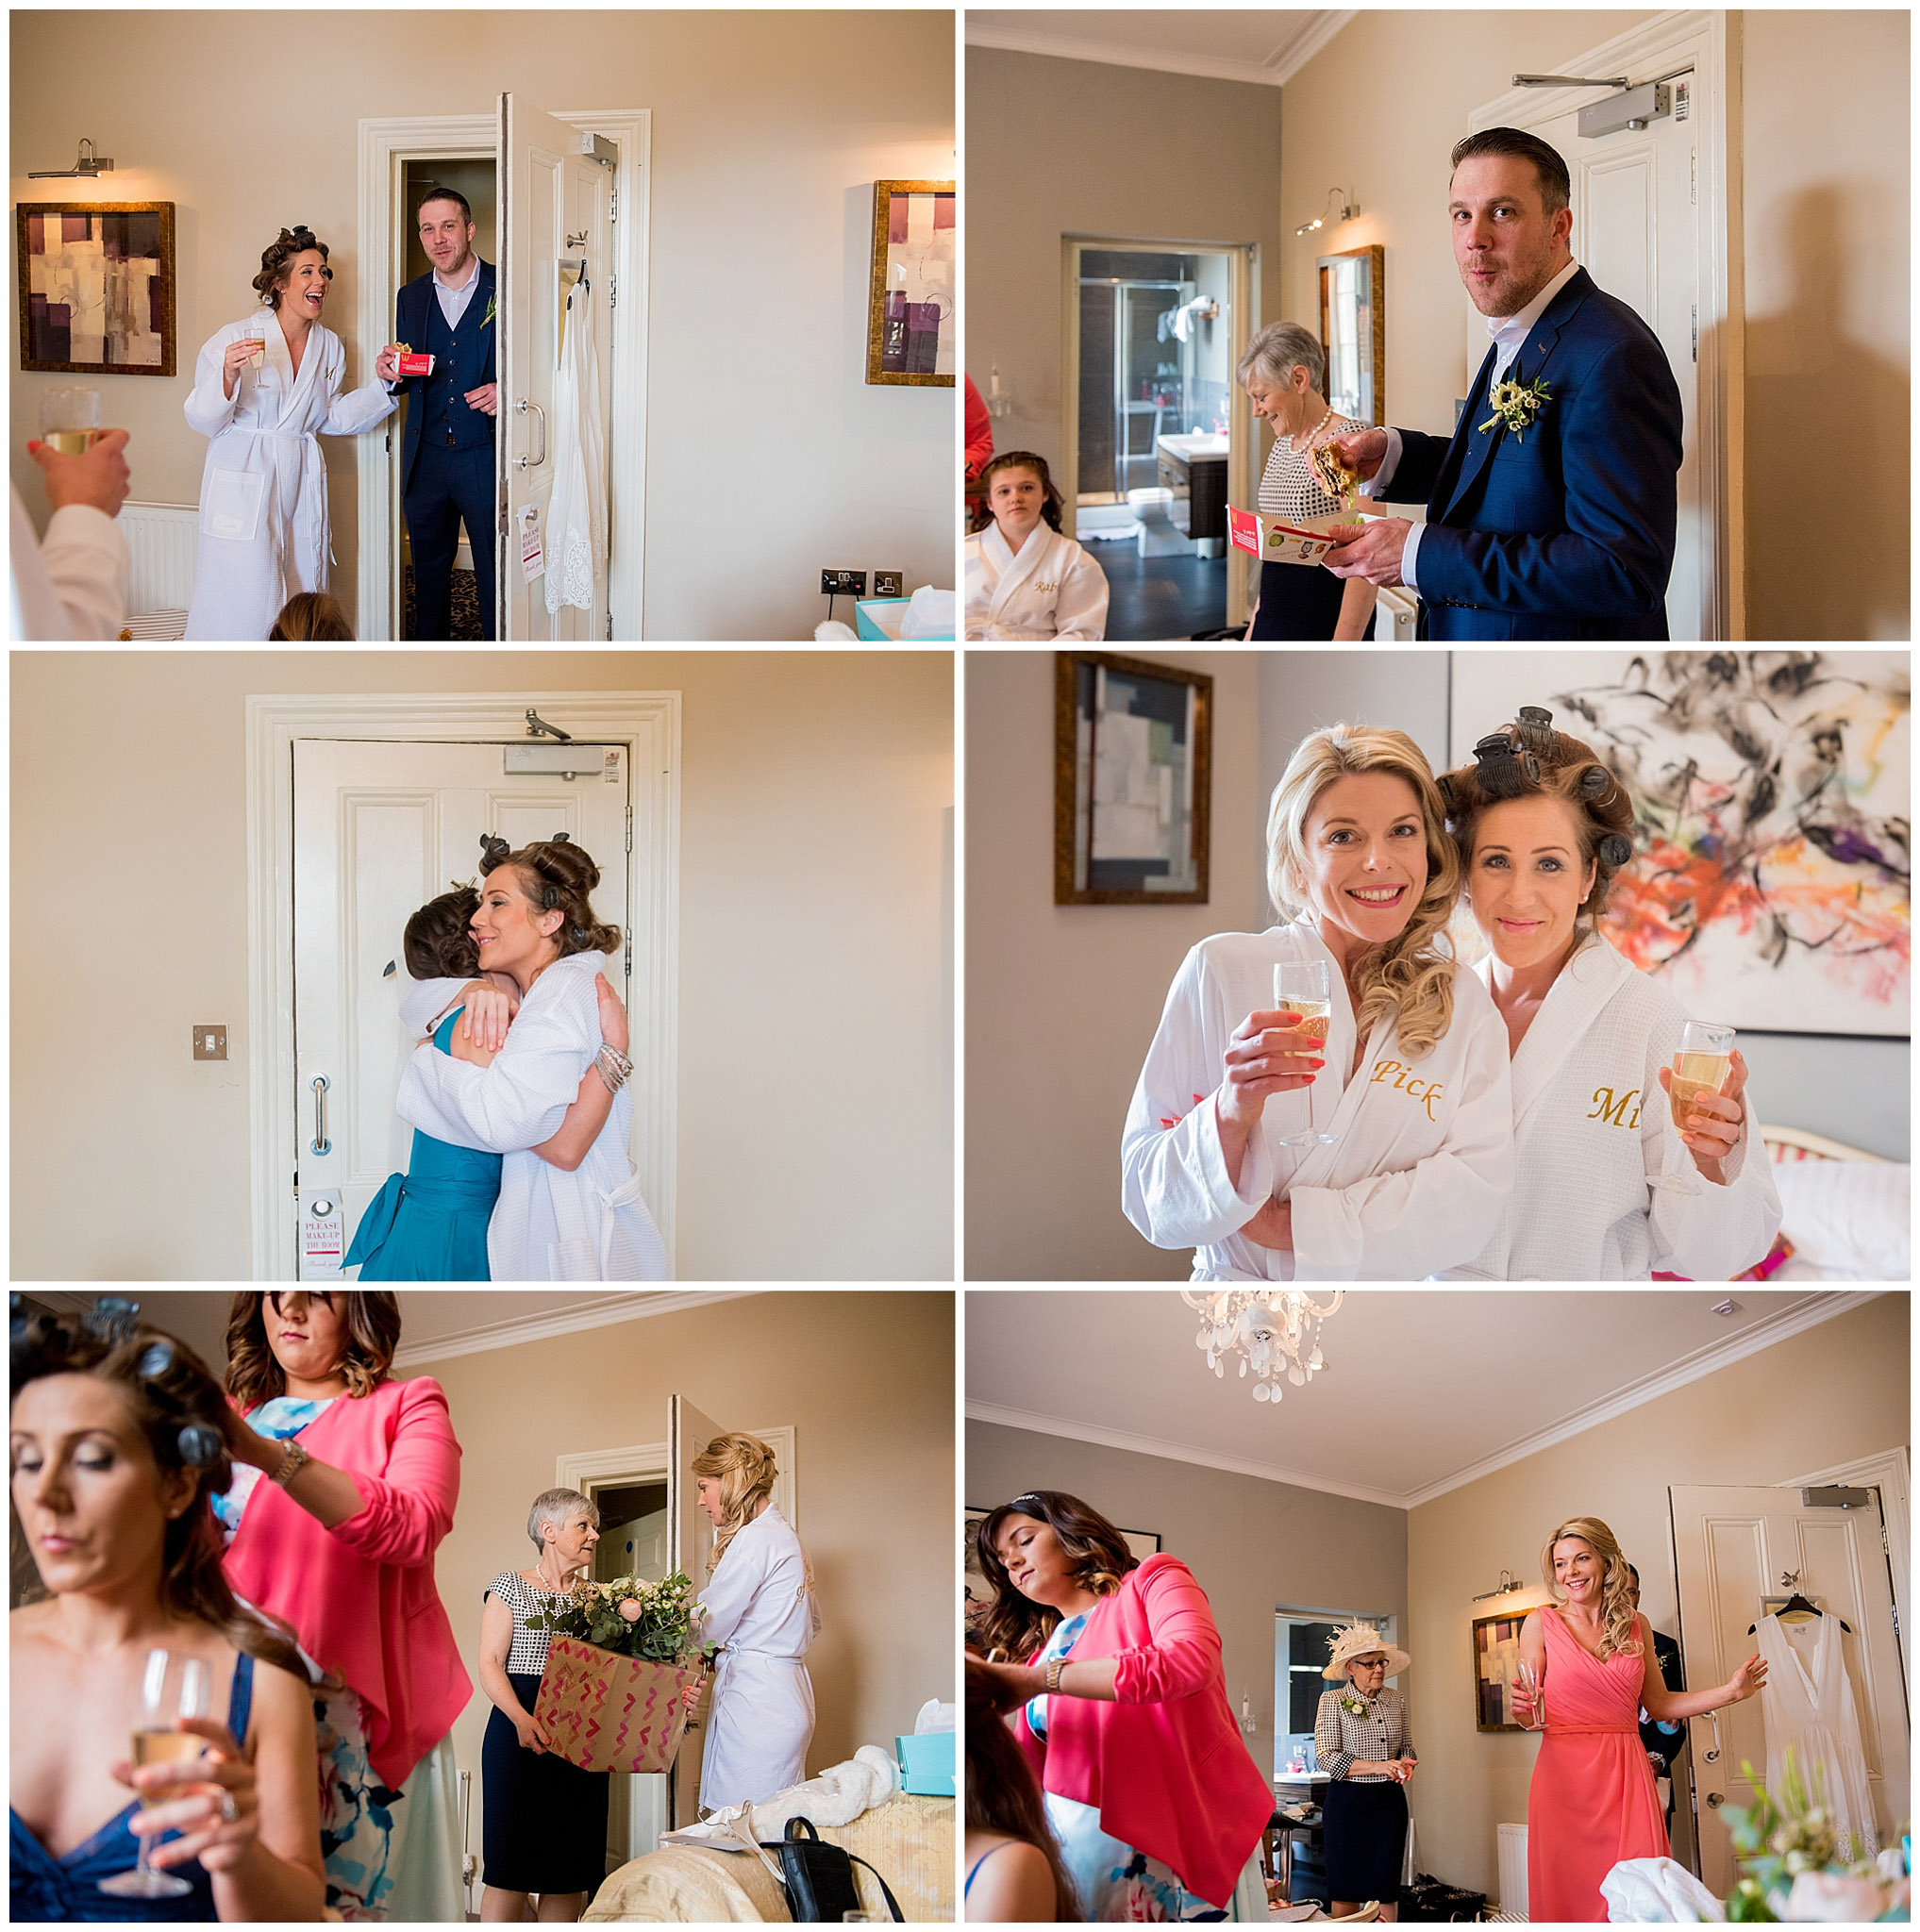 Katie-&-Steve-Victoria-Park-Methodist-Chruch-Winton-&-The-Manor-Burton-Christchurch-Wedding-7